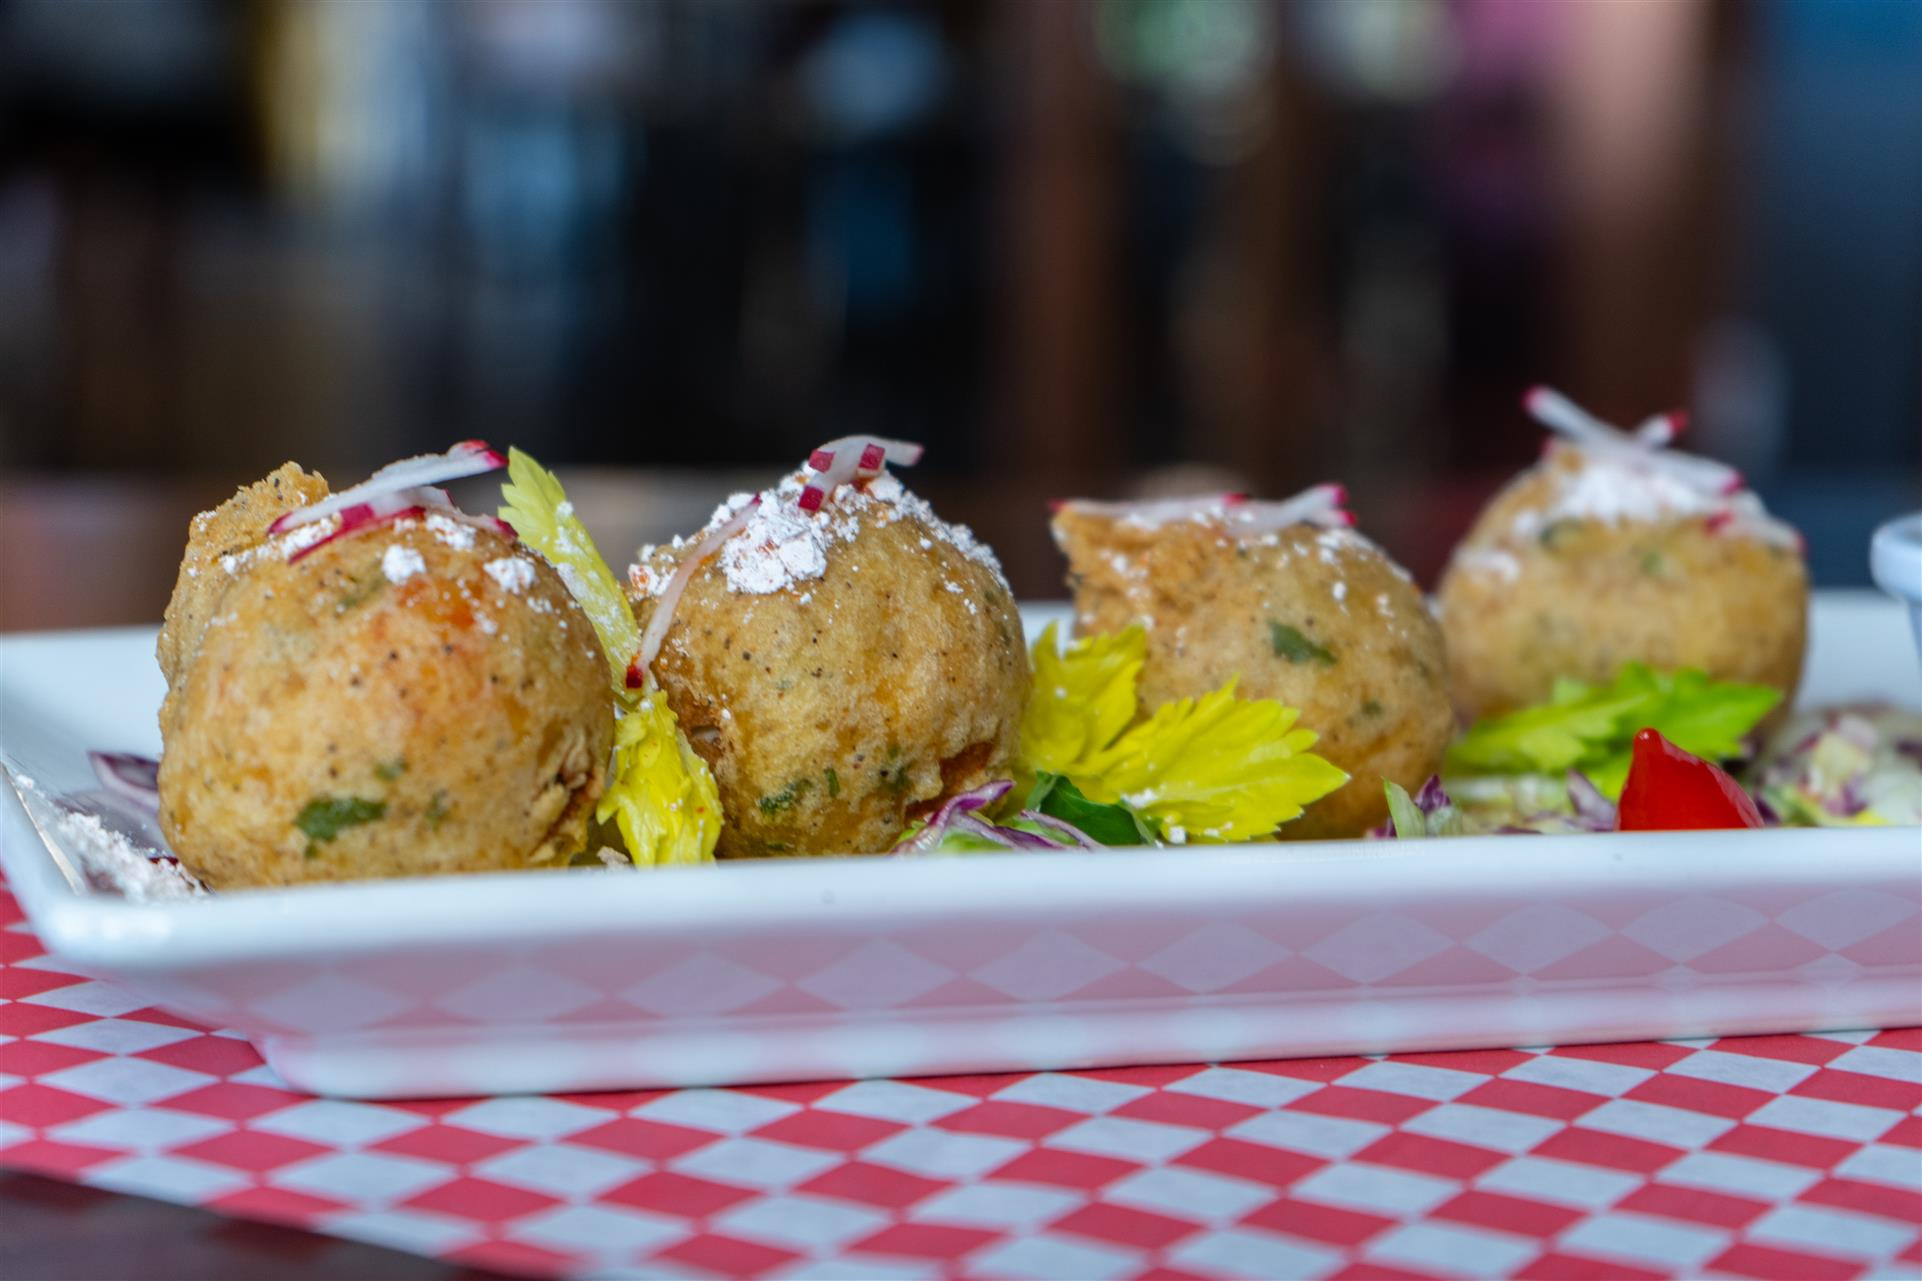 Crawfish Beignets. Seasoned crawfish croquettes deep-fried & sprinkled with cayenne powdered sugar served with Cajun rémoulade